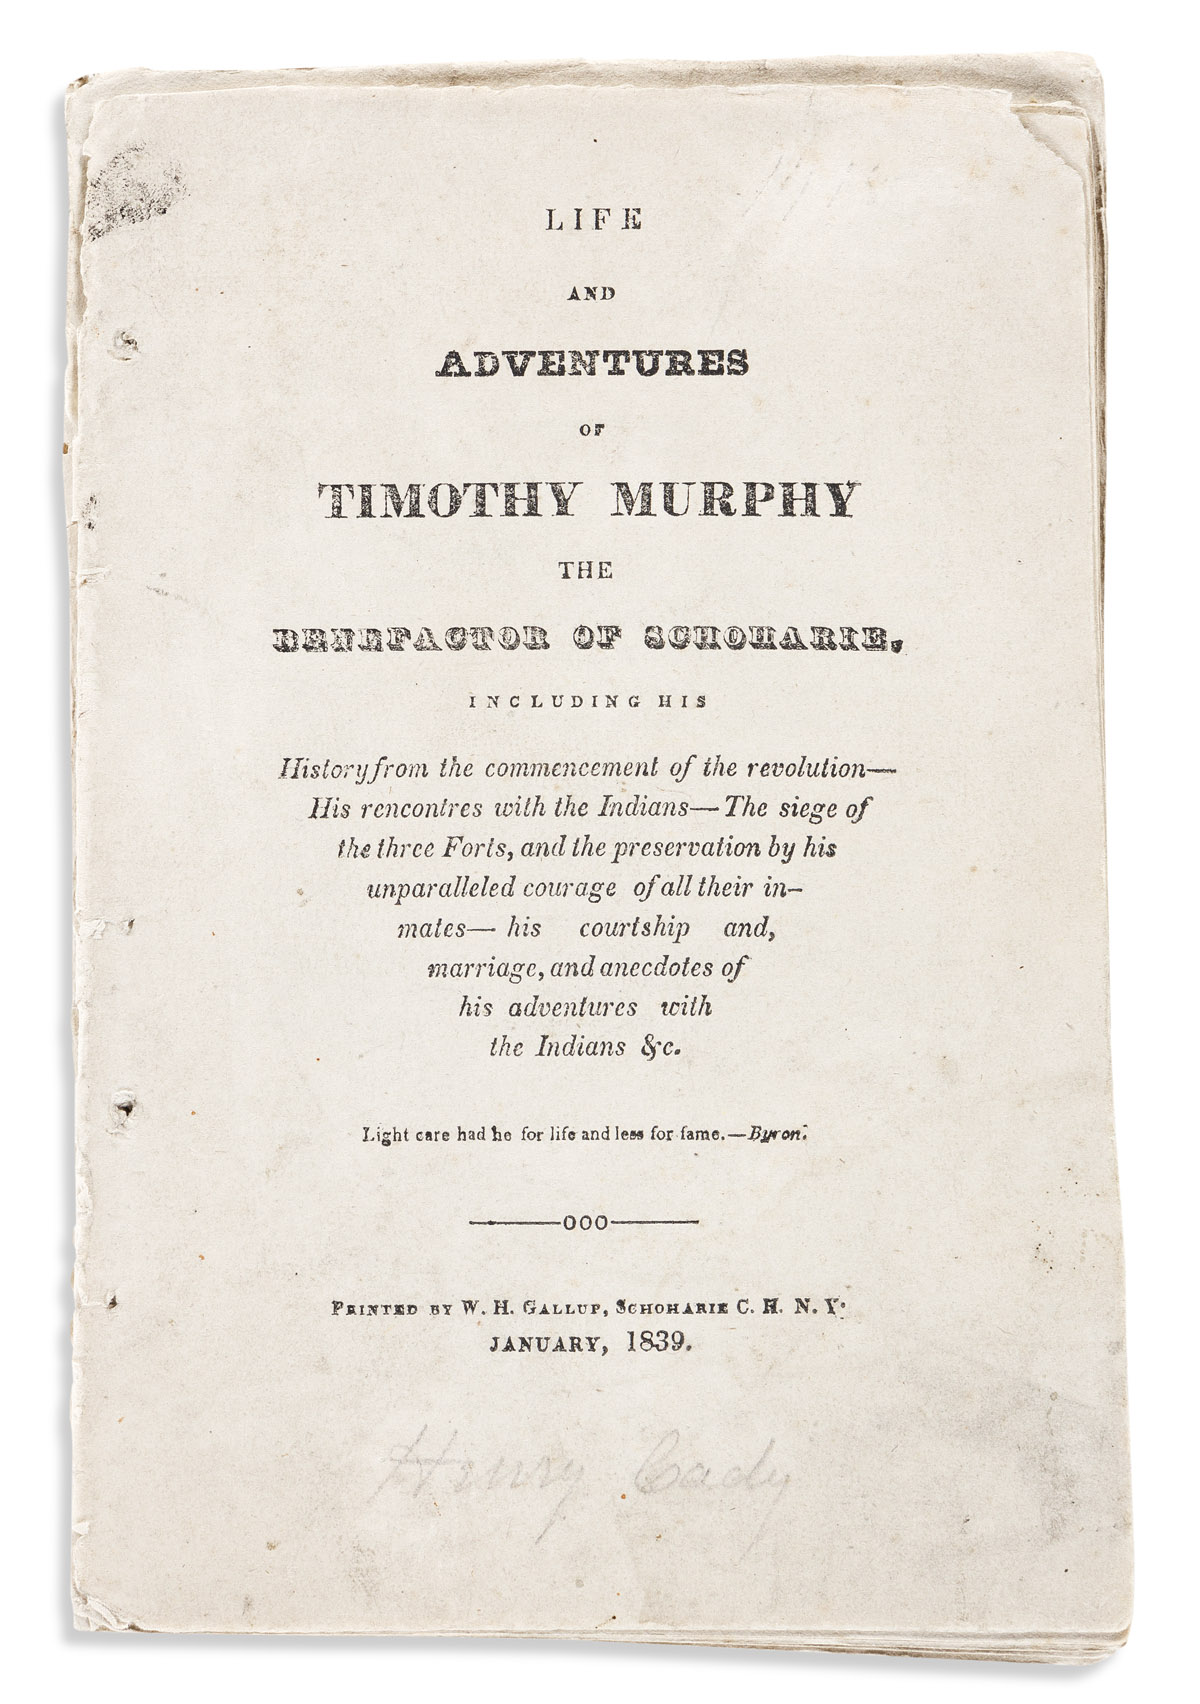 (AMERICAN REVOLUTION--HISTORY.) [William Sigsby.] Life and Adventures of Timothy Murphy . . . from the Commencement of the Revolution.